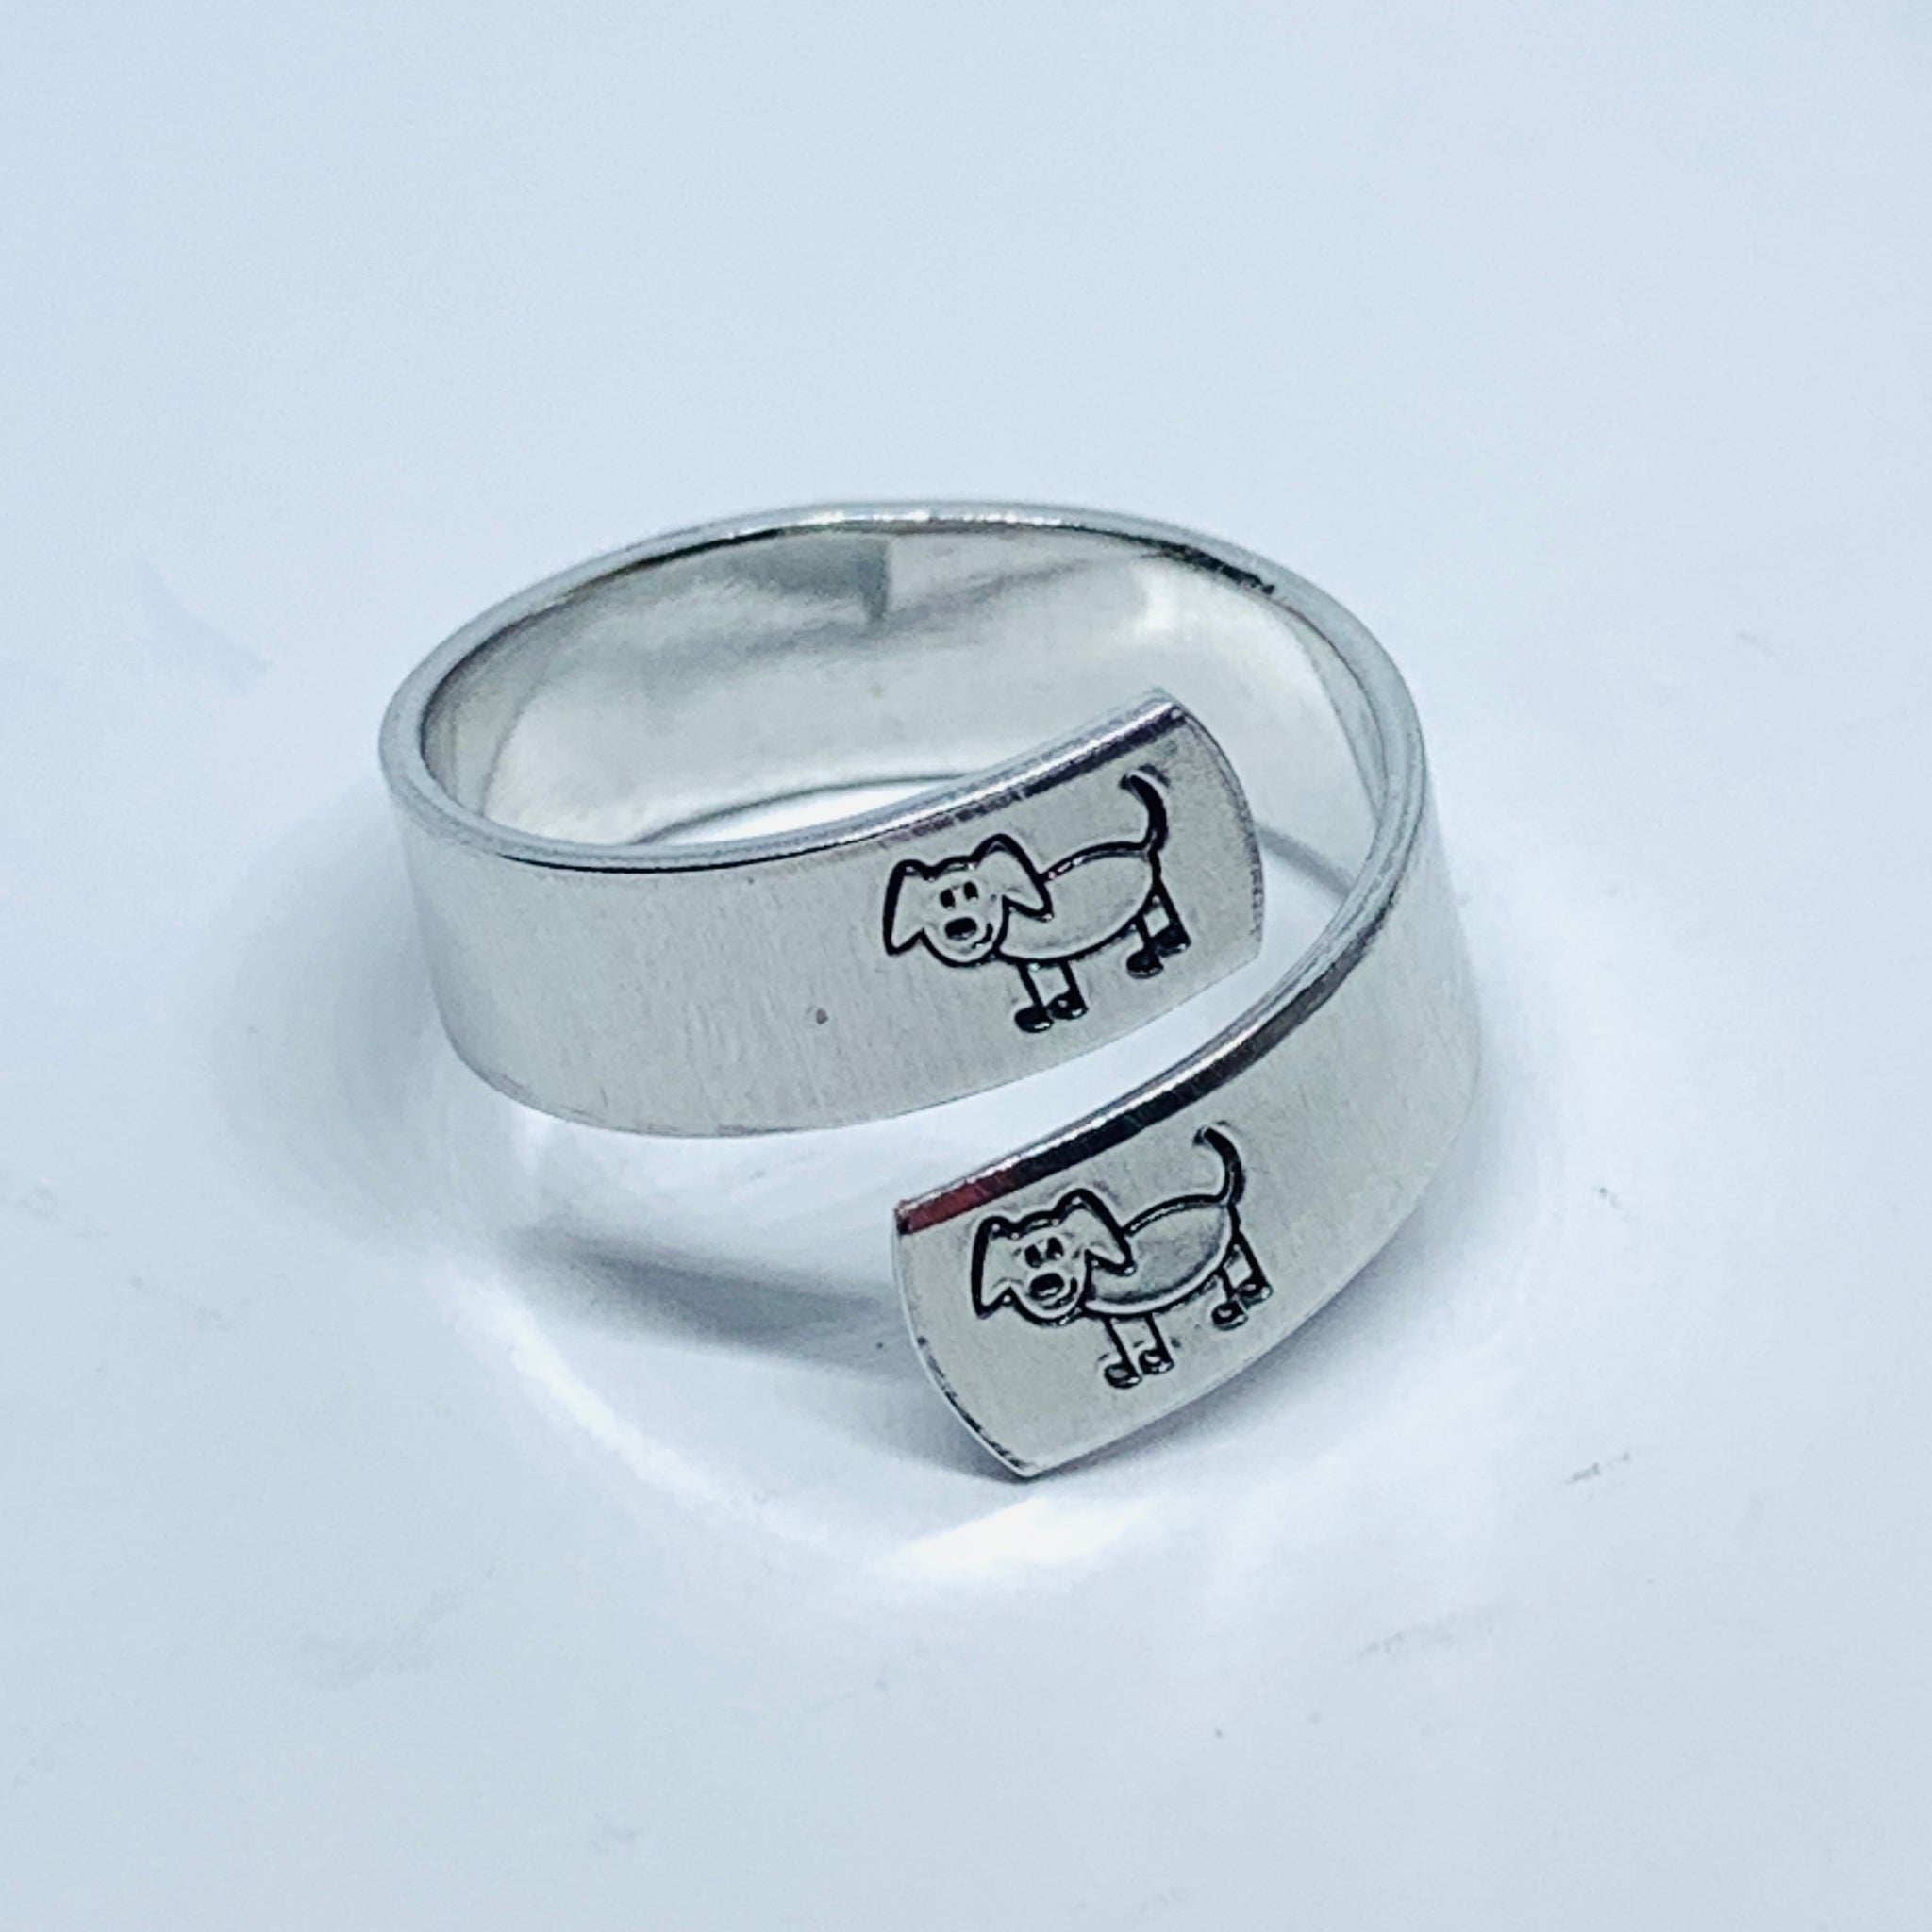 Puppy Dogs - Hand Stamped 18g Aluminum Wrap Ring